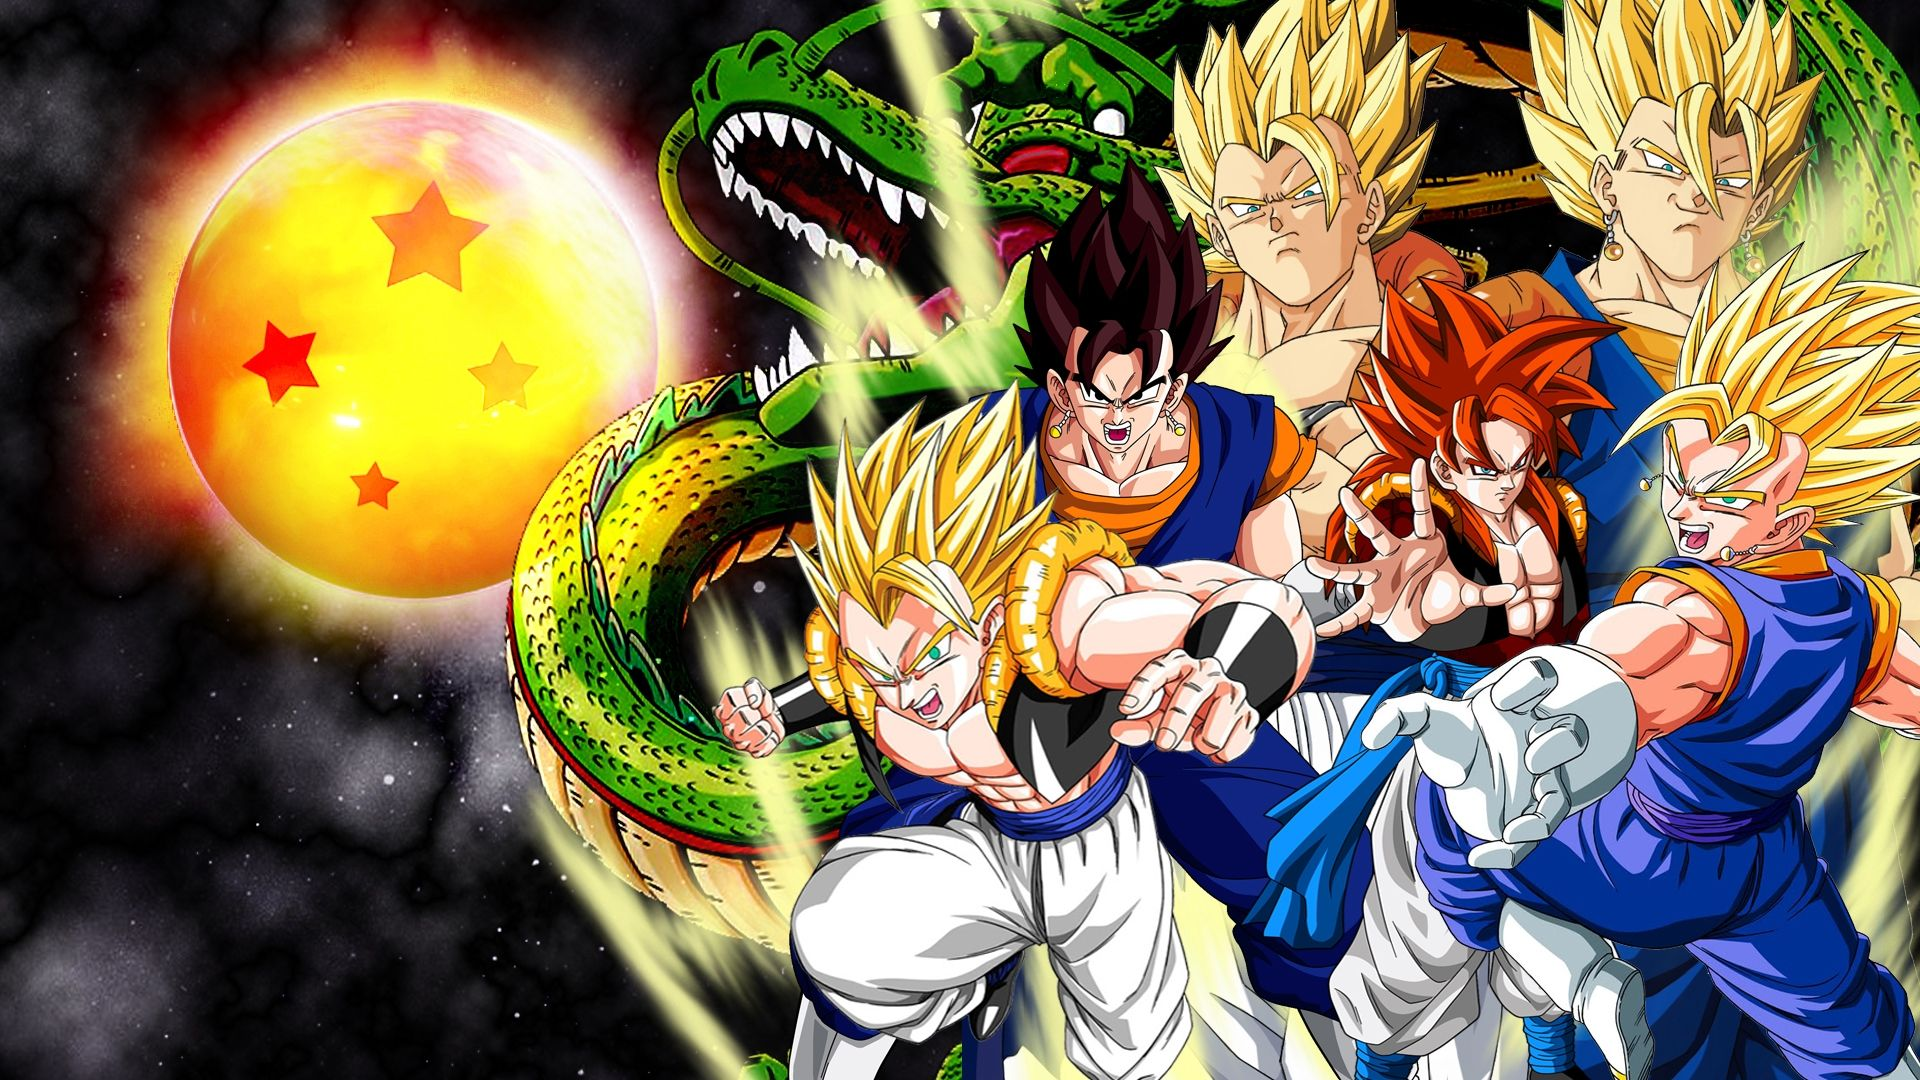 Cool wallpaper of dragon ball z hd download free cool - Hd dragon ball z images ...